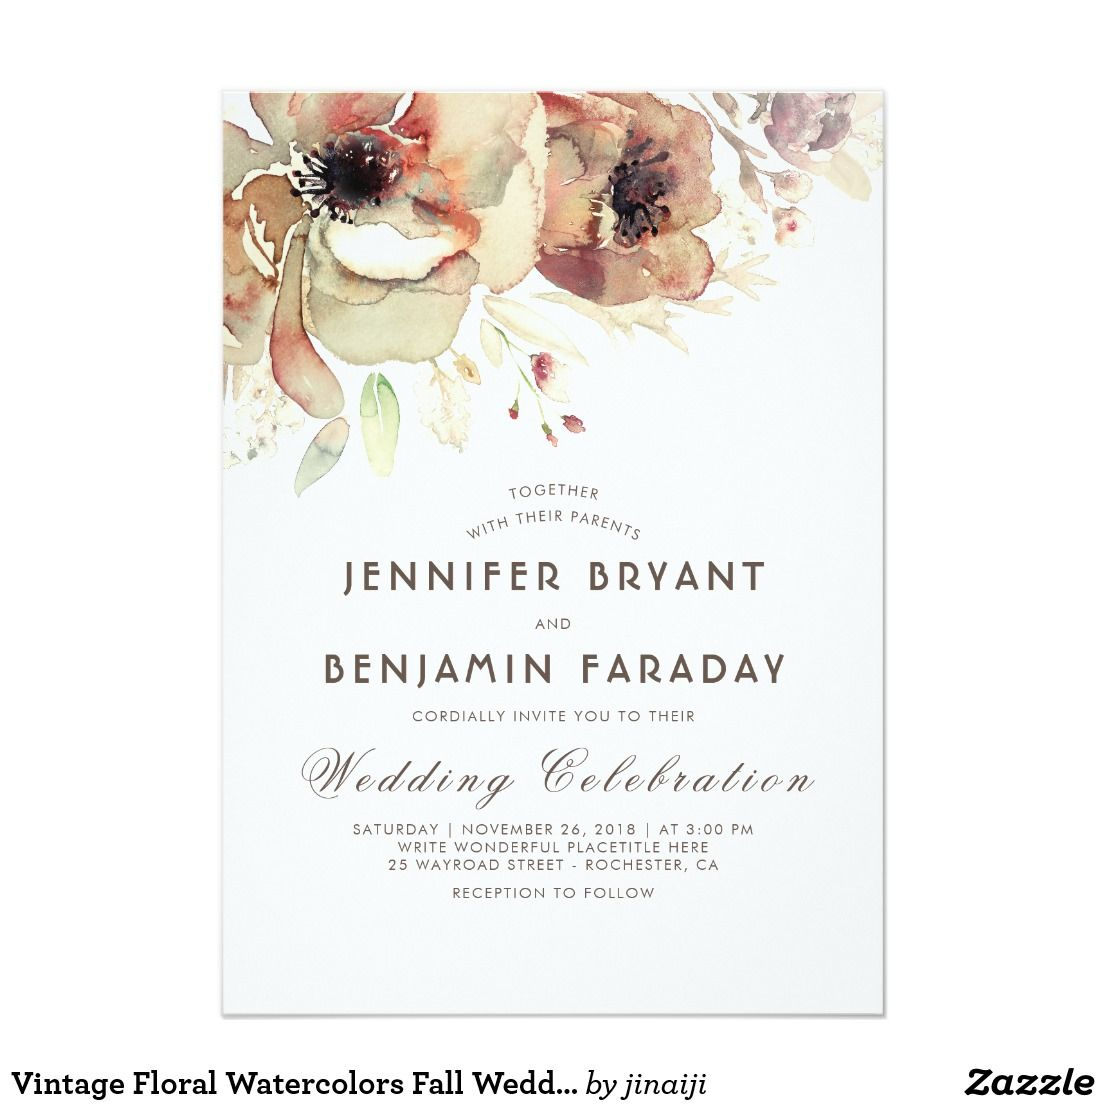 Vintage Floral Watercolors Fall Wedding Invitation | { Wedding ...